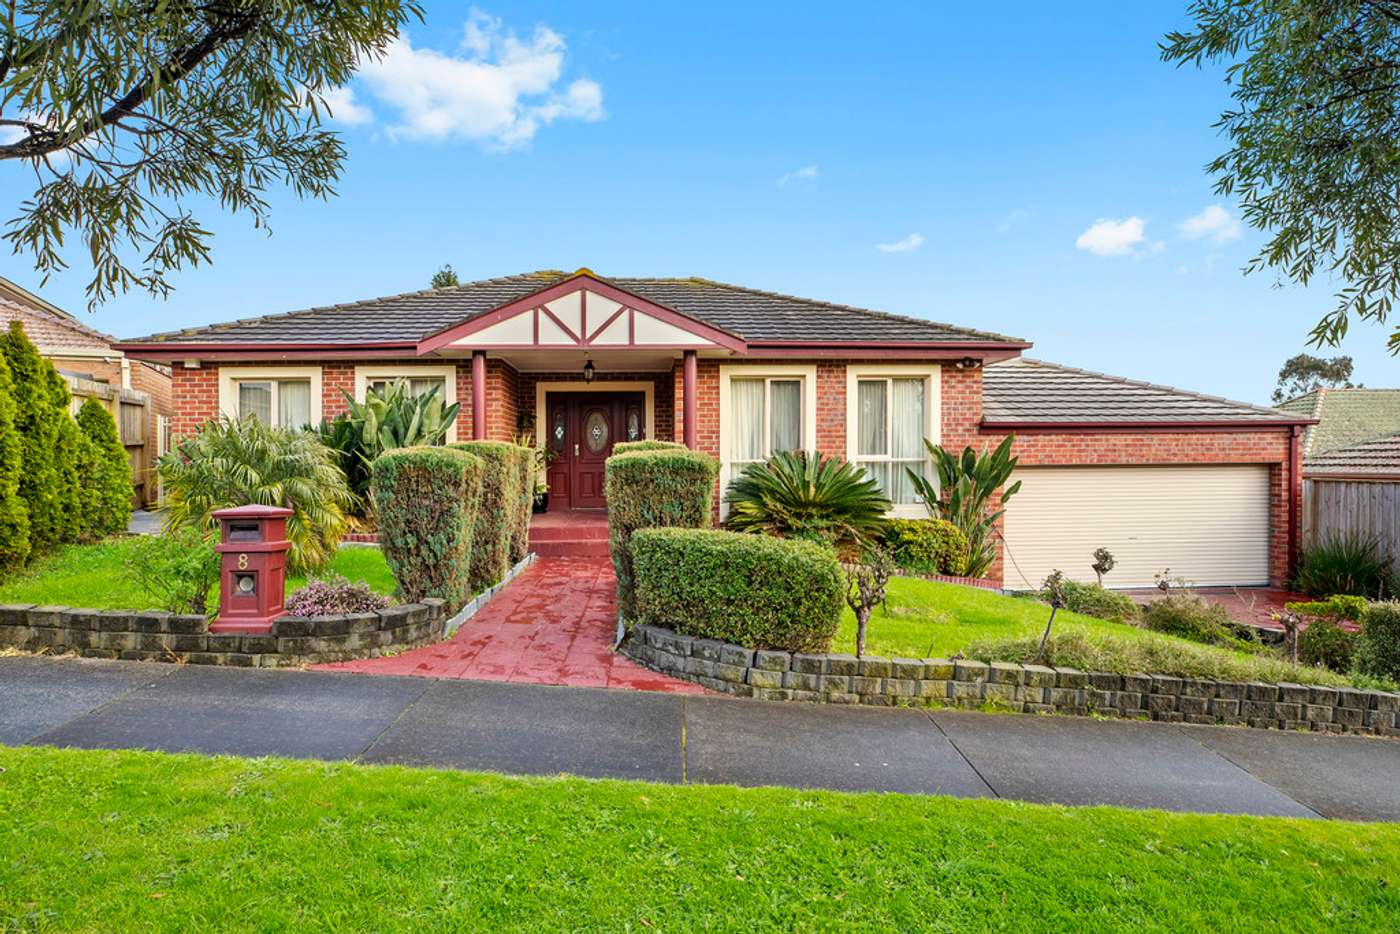 Main view of Homely house listing, 8 Revilo Court, Mulgrave VIC 3170